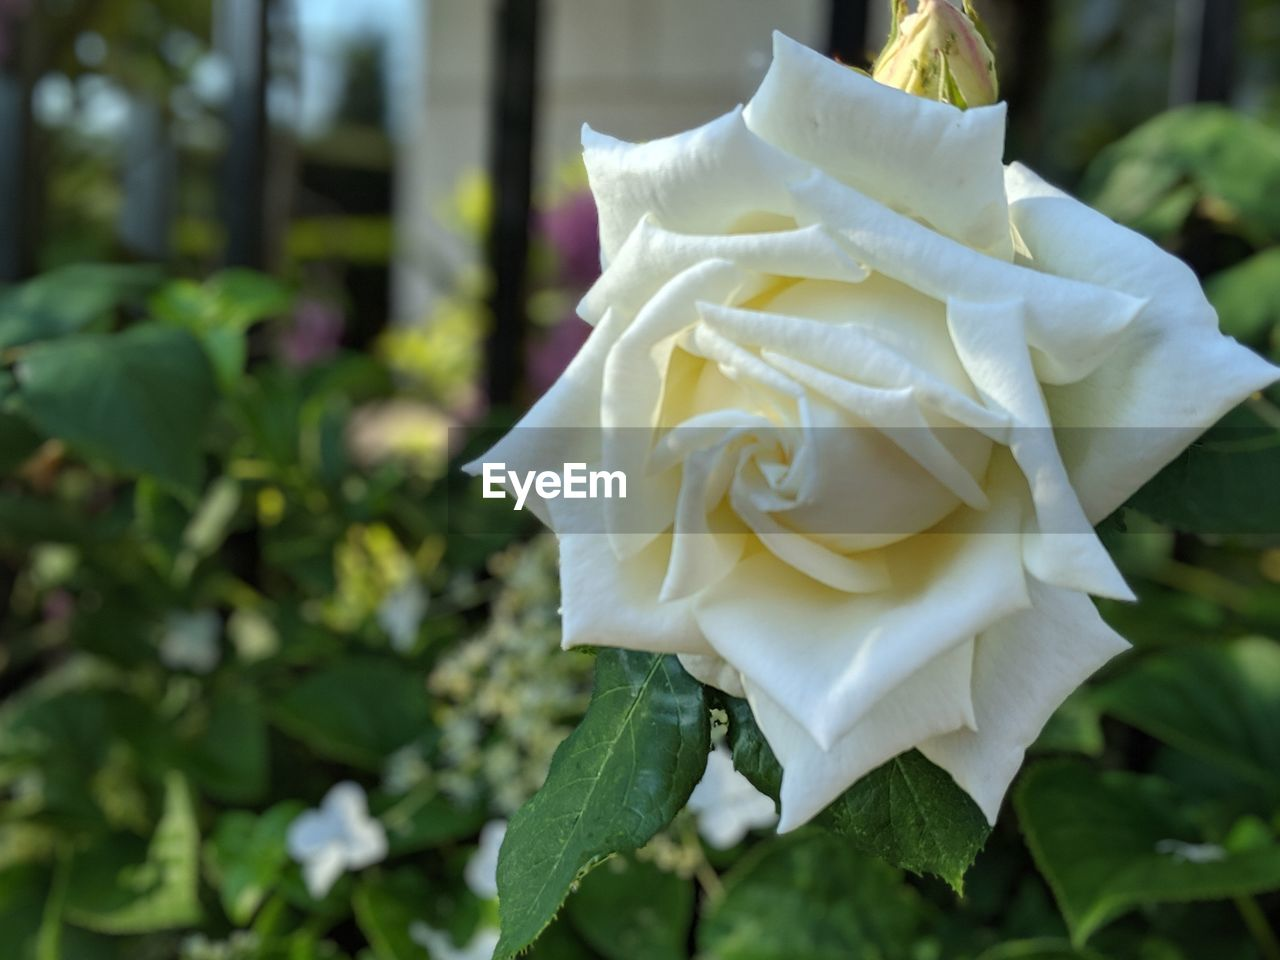 flower, beauty in nature, petal, plant, flowering plant, vulnerability, flower head, fragility, rose, inflorescence, close-up, growth, freshness, rose - flower, white color, focus on foreground, nature, leaf, plant part, no people, outdoors